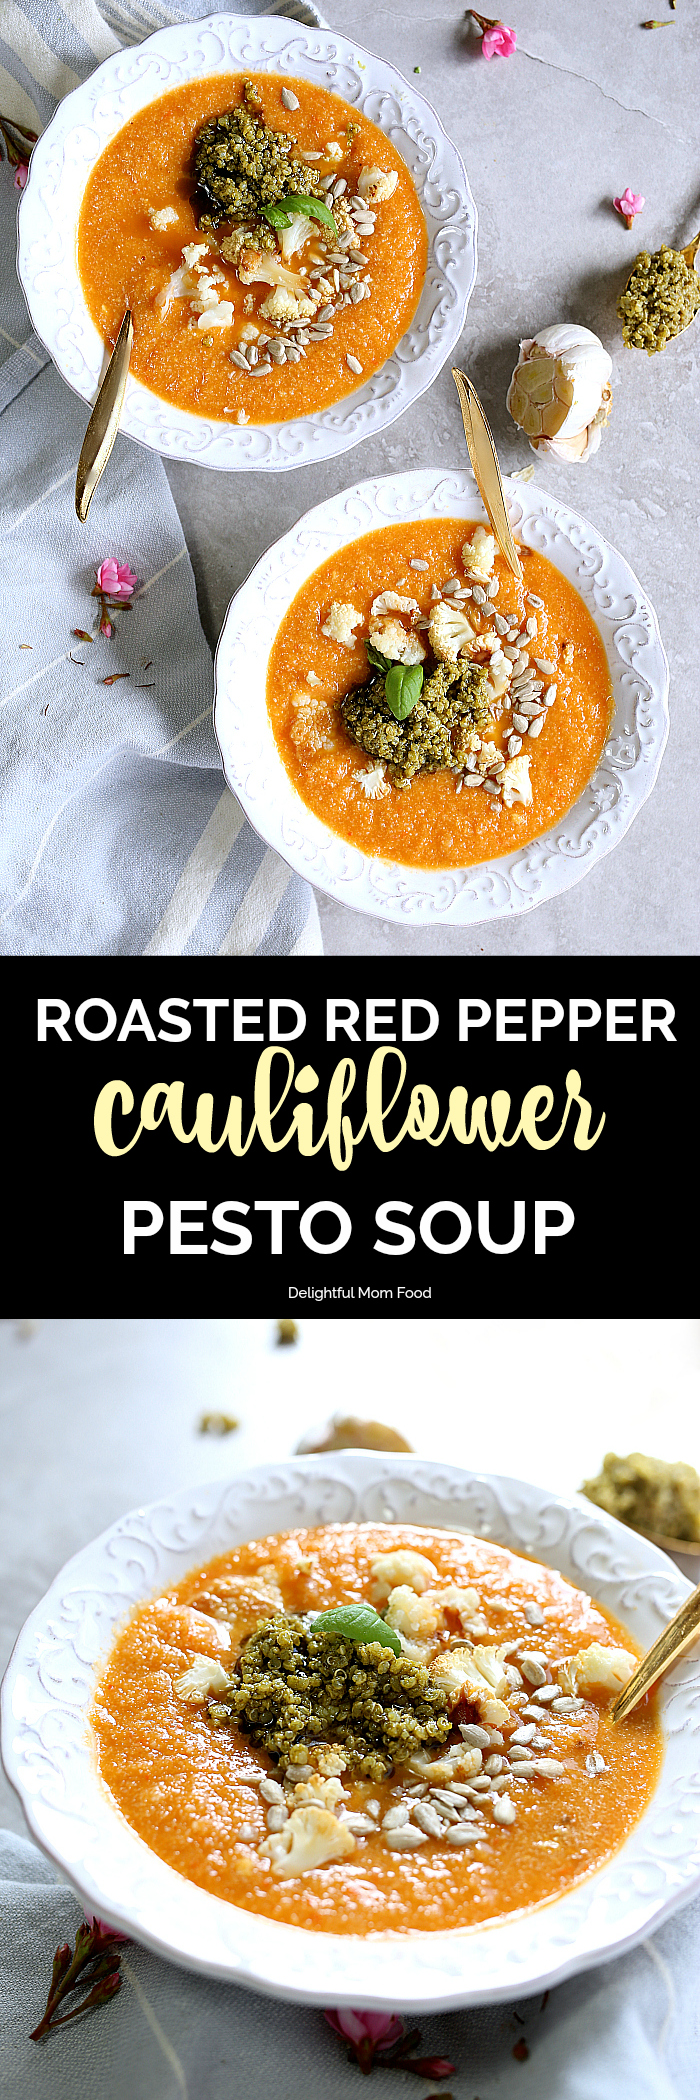 Healthy roasted cauliflower soup slowly roasted with garlic, sweet red pepper and onion then pureed with vegetarian broth. The finishing touch of this cauliflower soup is a dab of aromatic pesto on top right before serving! It's healthy, easy, gluten-free and delicious! #cauliflower #soup #roasted #redpepper #easy #delicious #healthy #recipe #glutenfree | delightfulmomfood.com